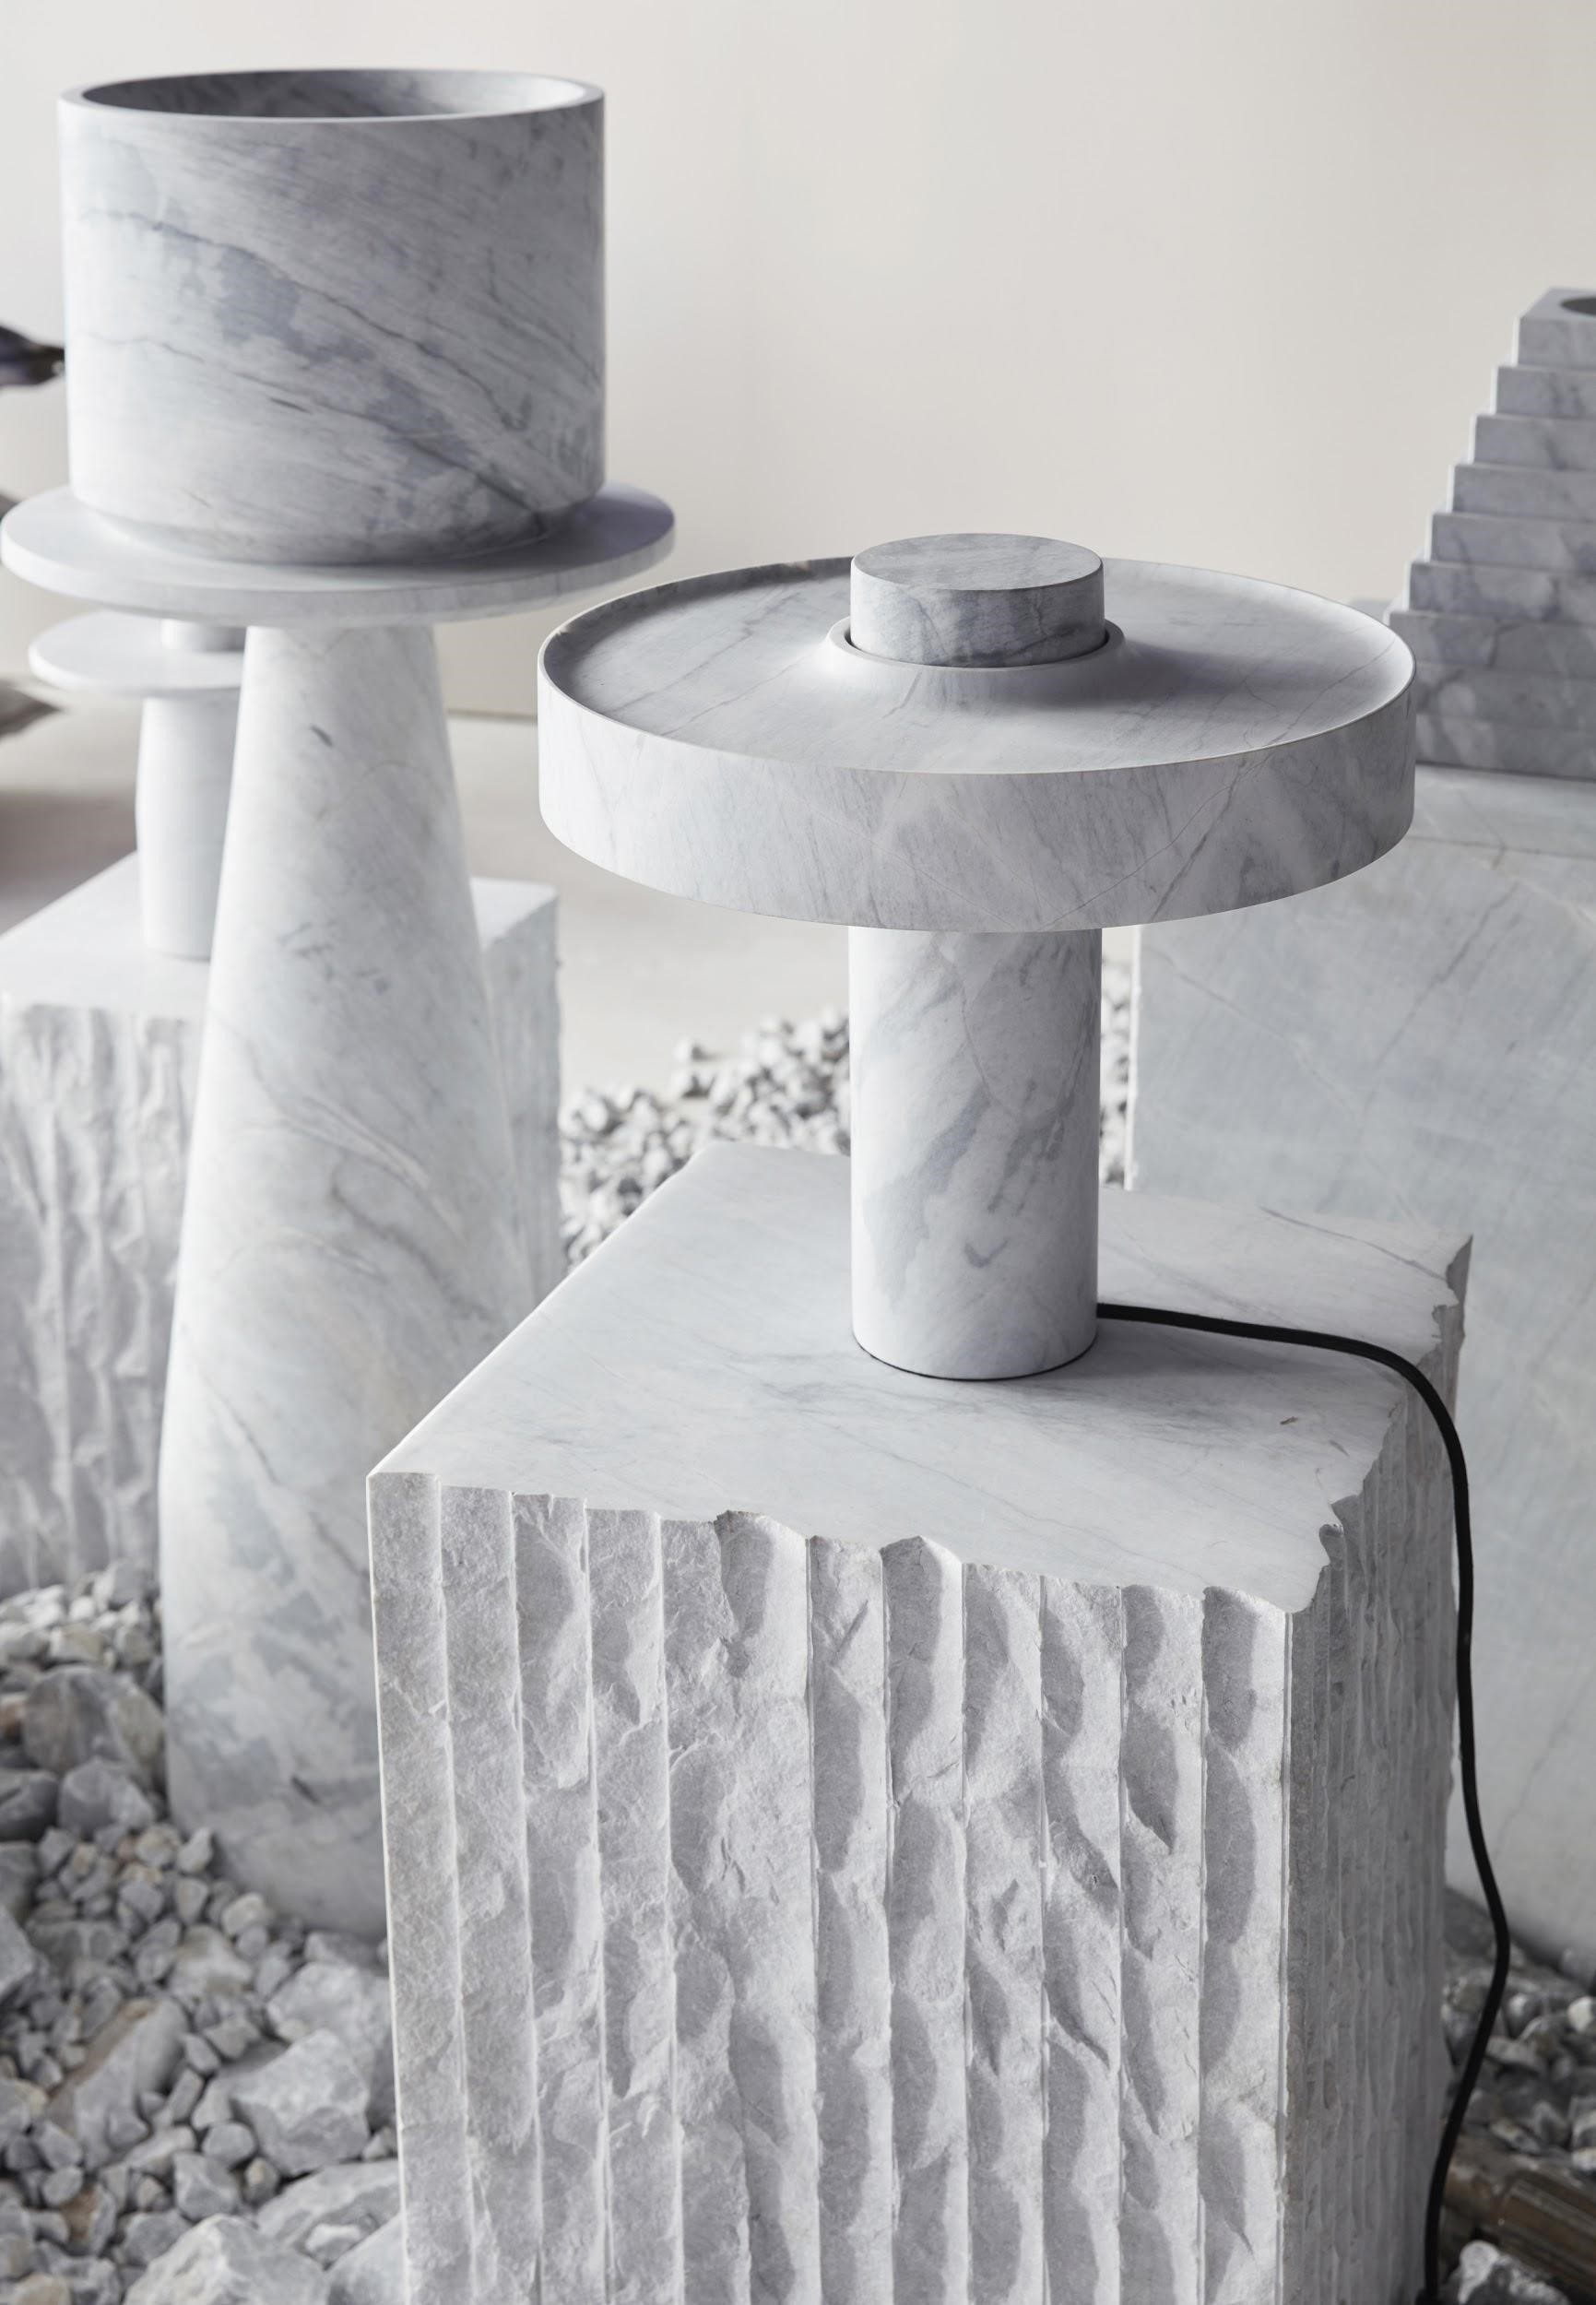 Rough Hewn Blocks Of Elba Are Juxtaposed With The Clarity Of The Designs From The New Volumes Collectio